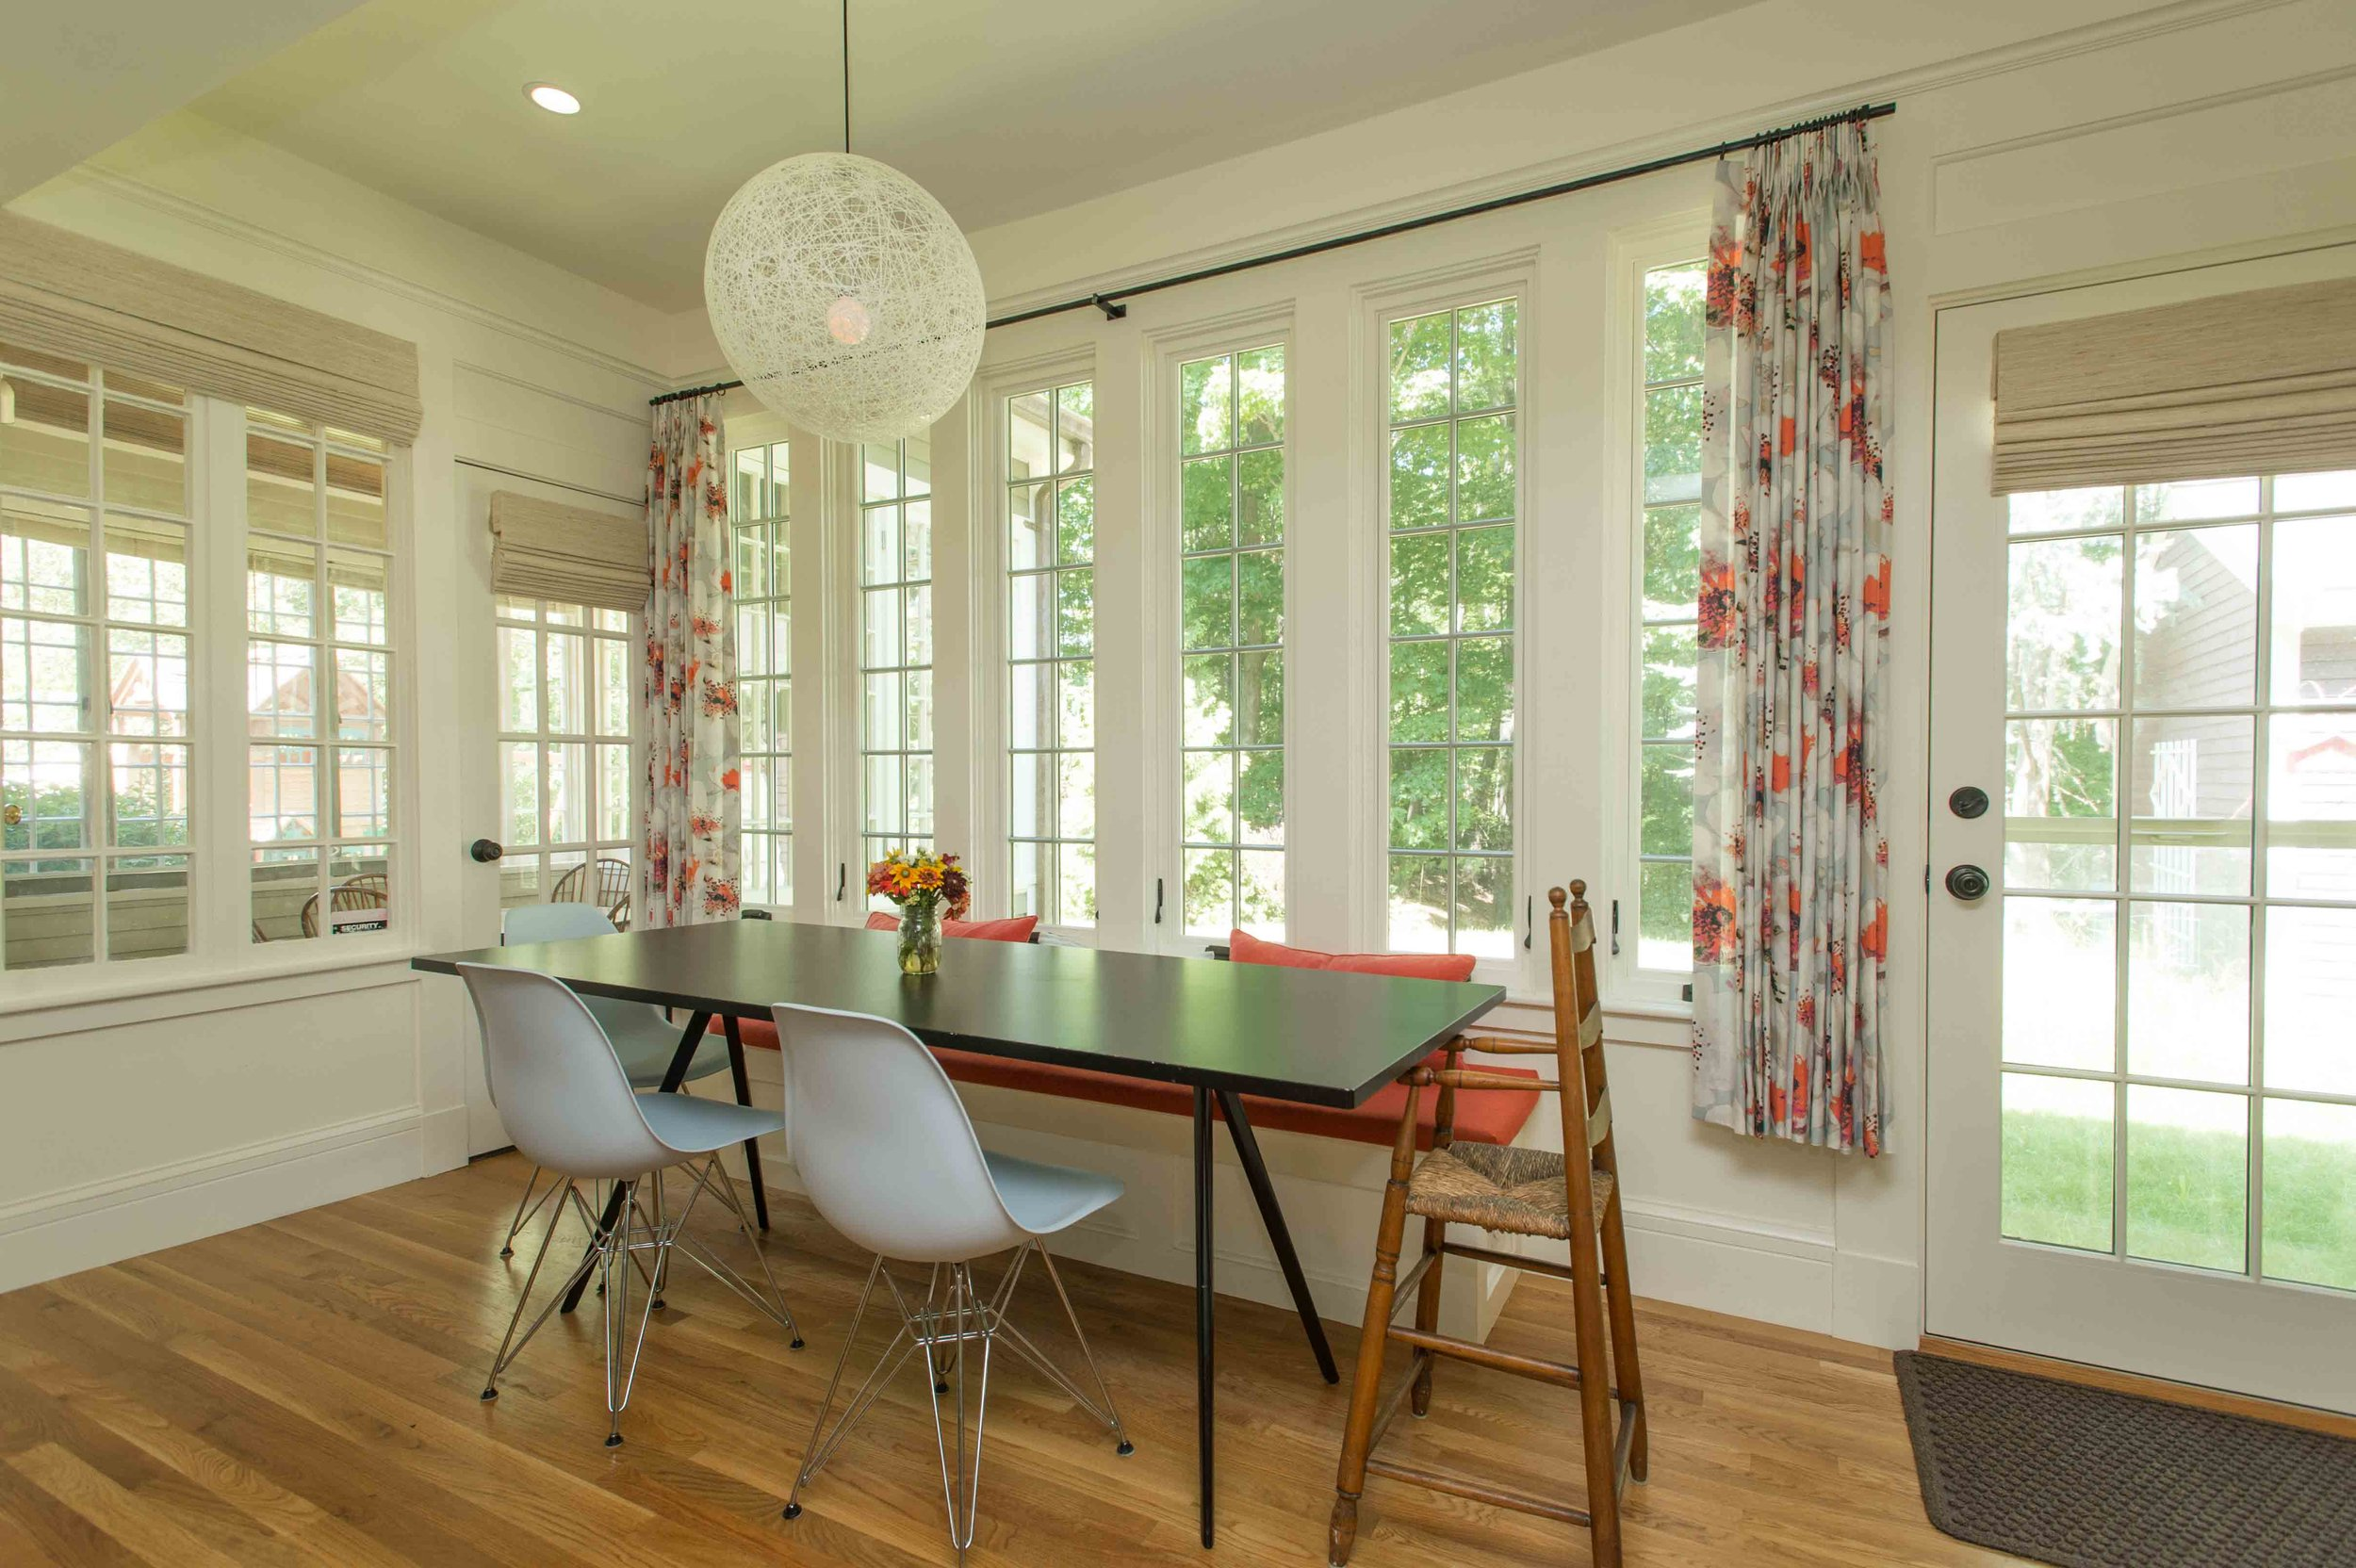 Needham Kitchen and Mudroom31.jpg